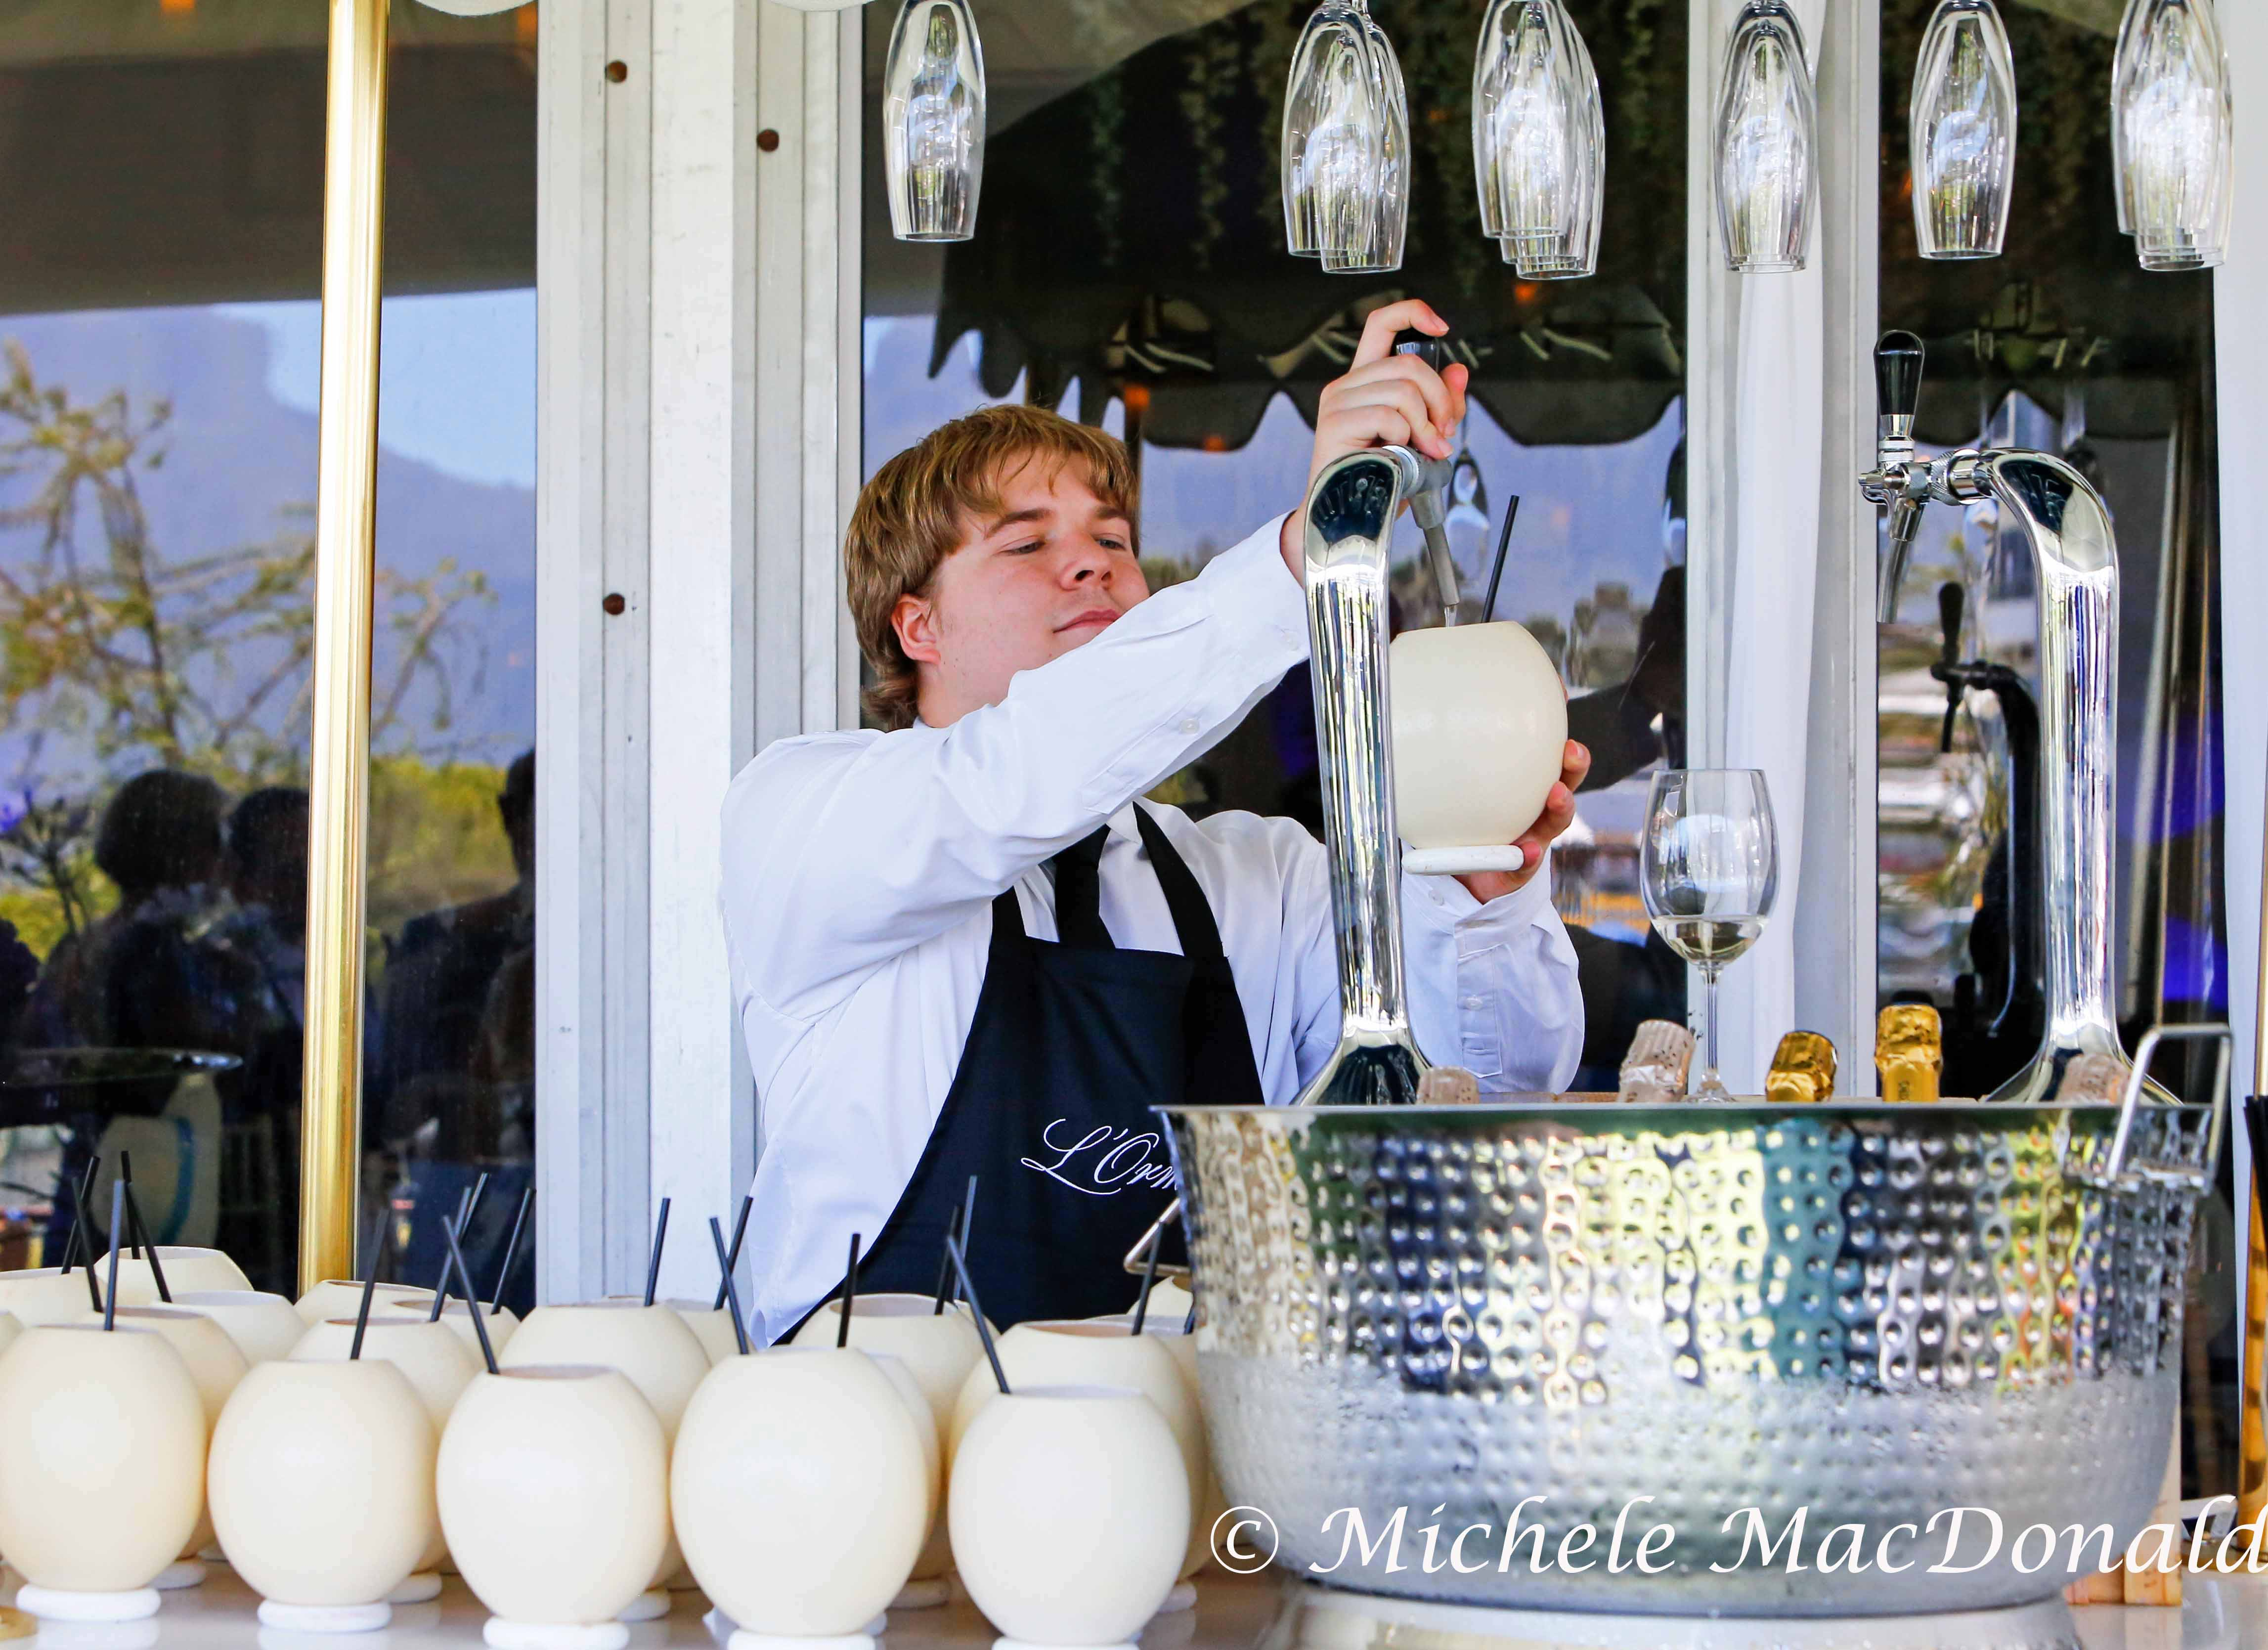 Champagne cocktails served in hollowed out ostrich eggs help fuel the intensity of fun. Photo: Michele MacDonald